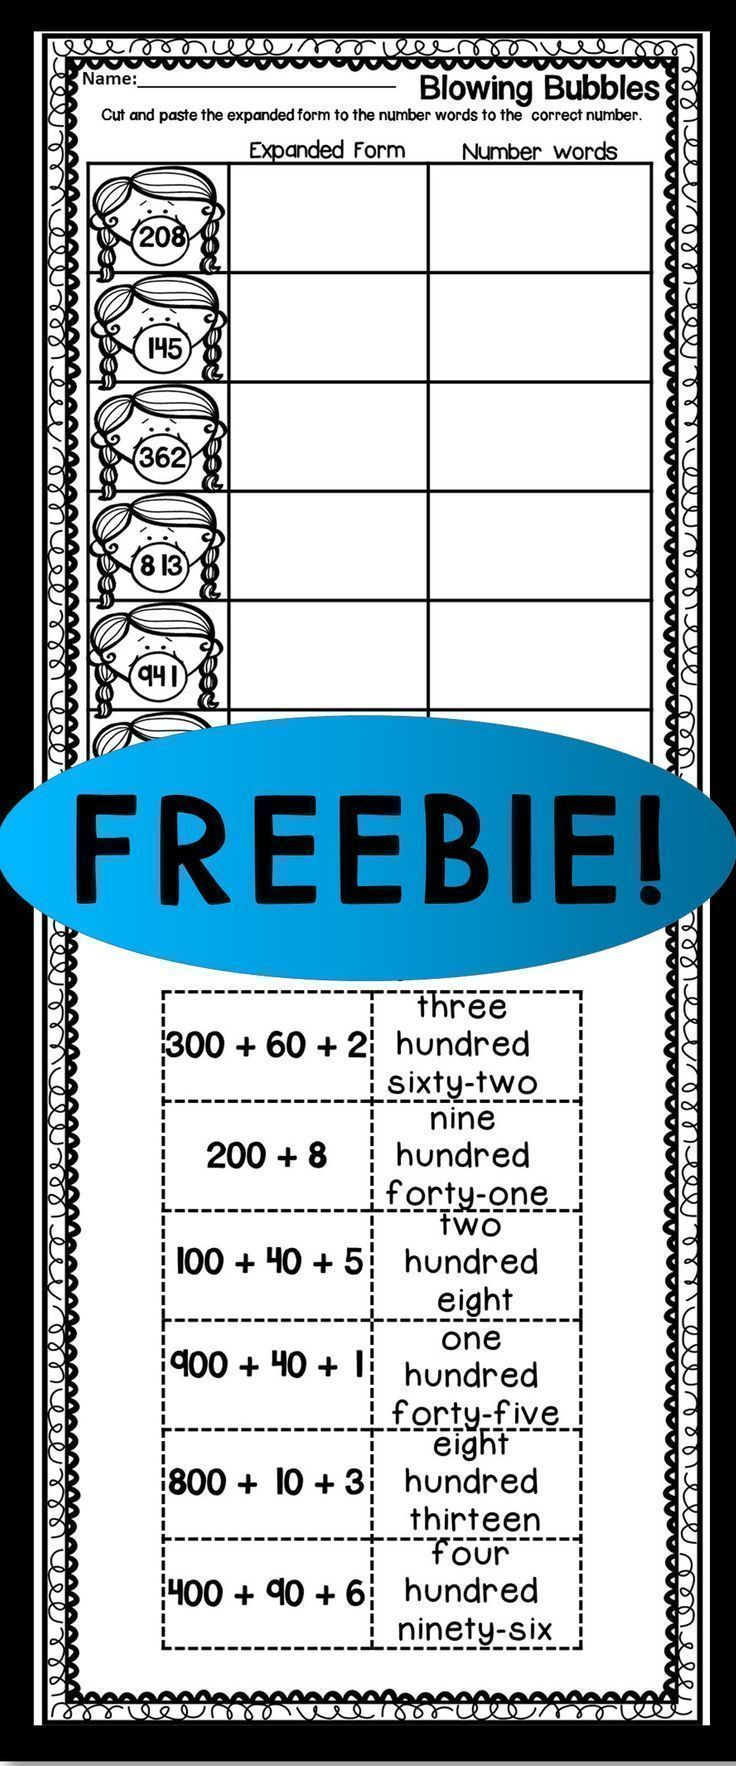 FREEBIE! EXPANDED FORM CUT AND PASTE | 2nd Grade Teacher Clubhouse ...